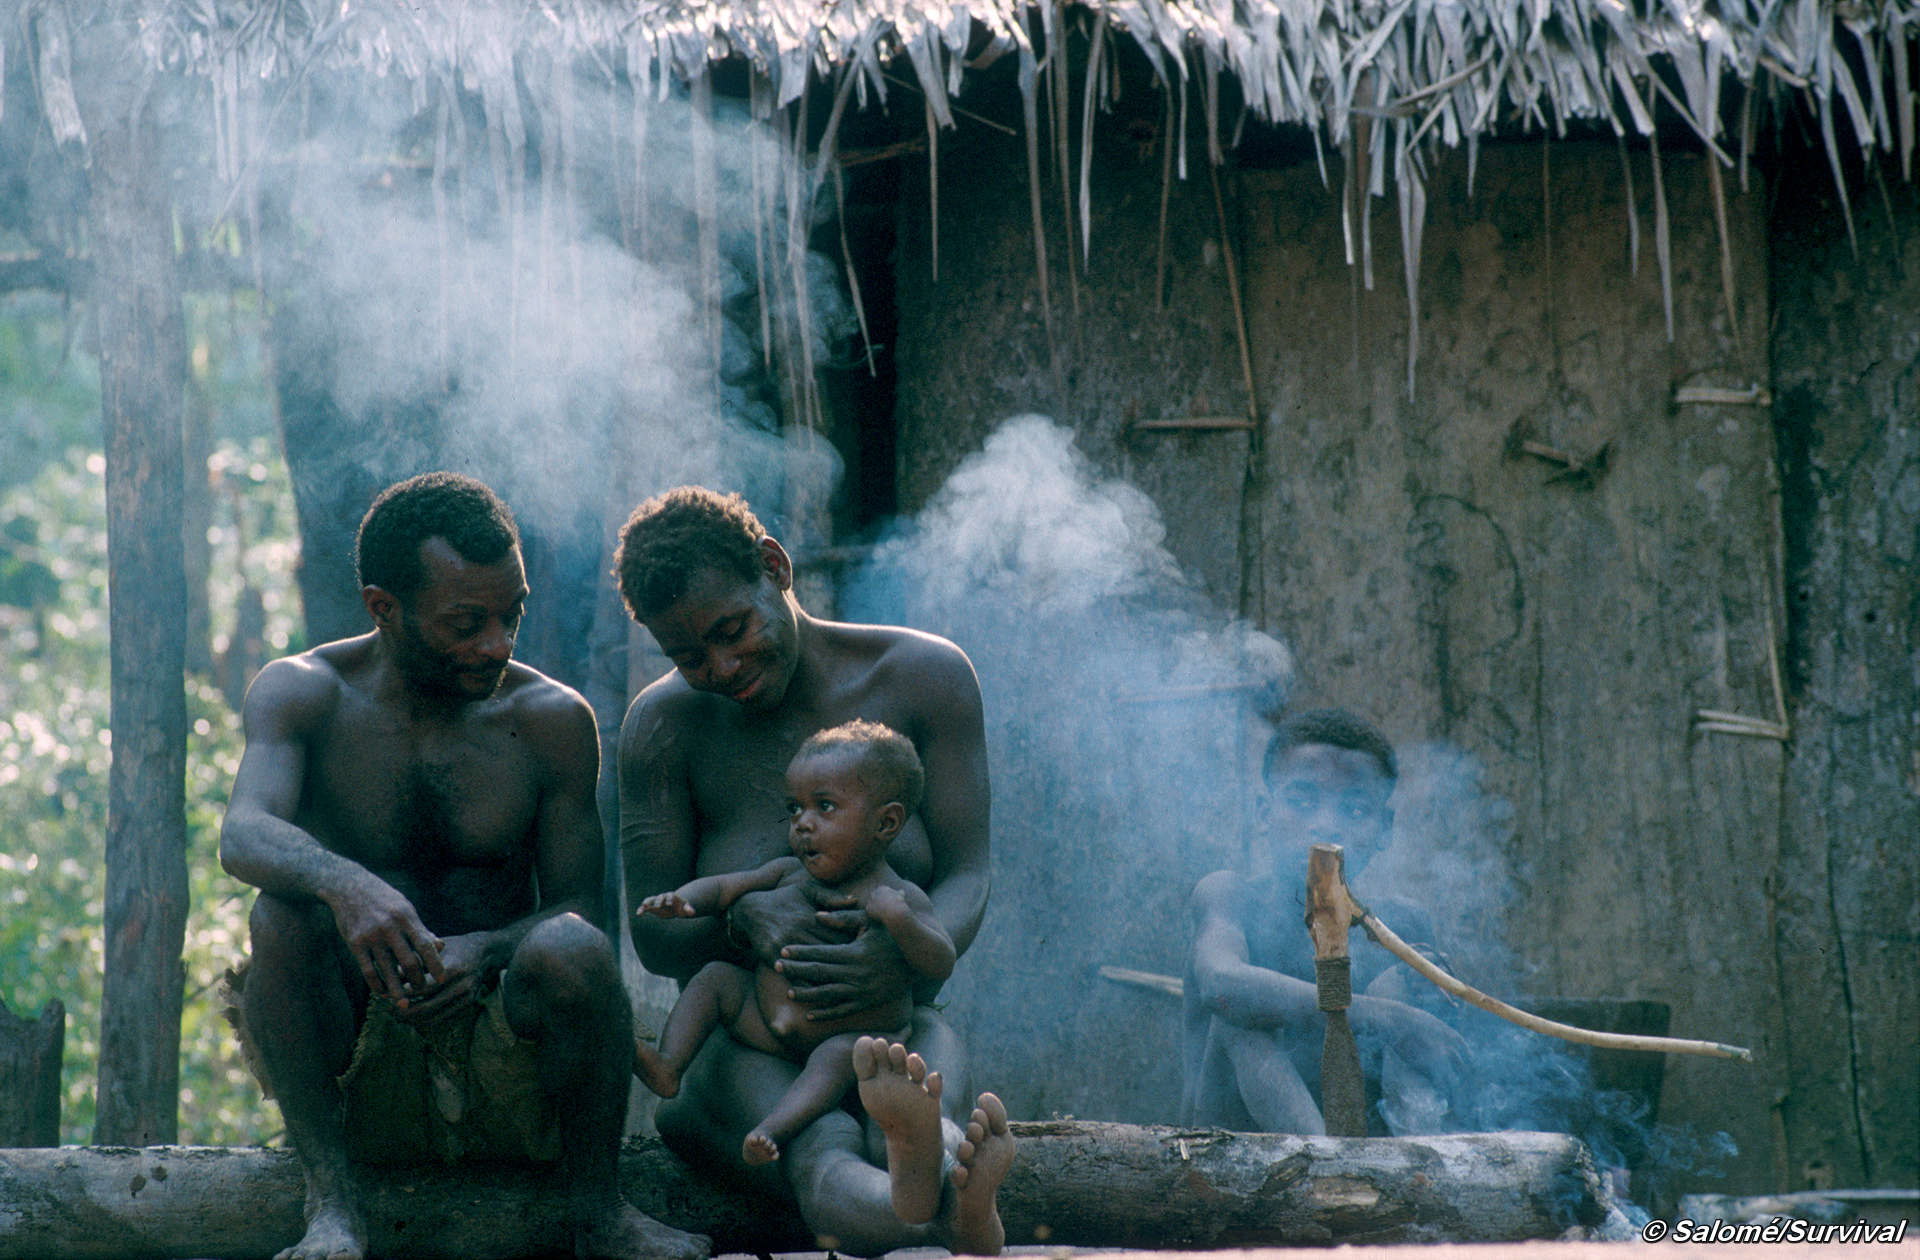 Amongst the Baka, childcare is shared with fathers spending approximately half the day near their babies.